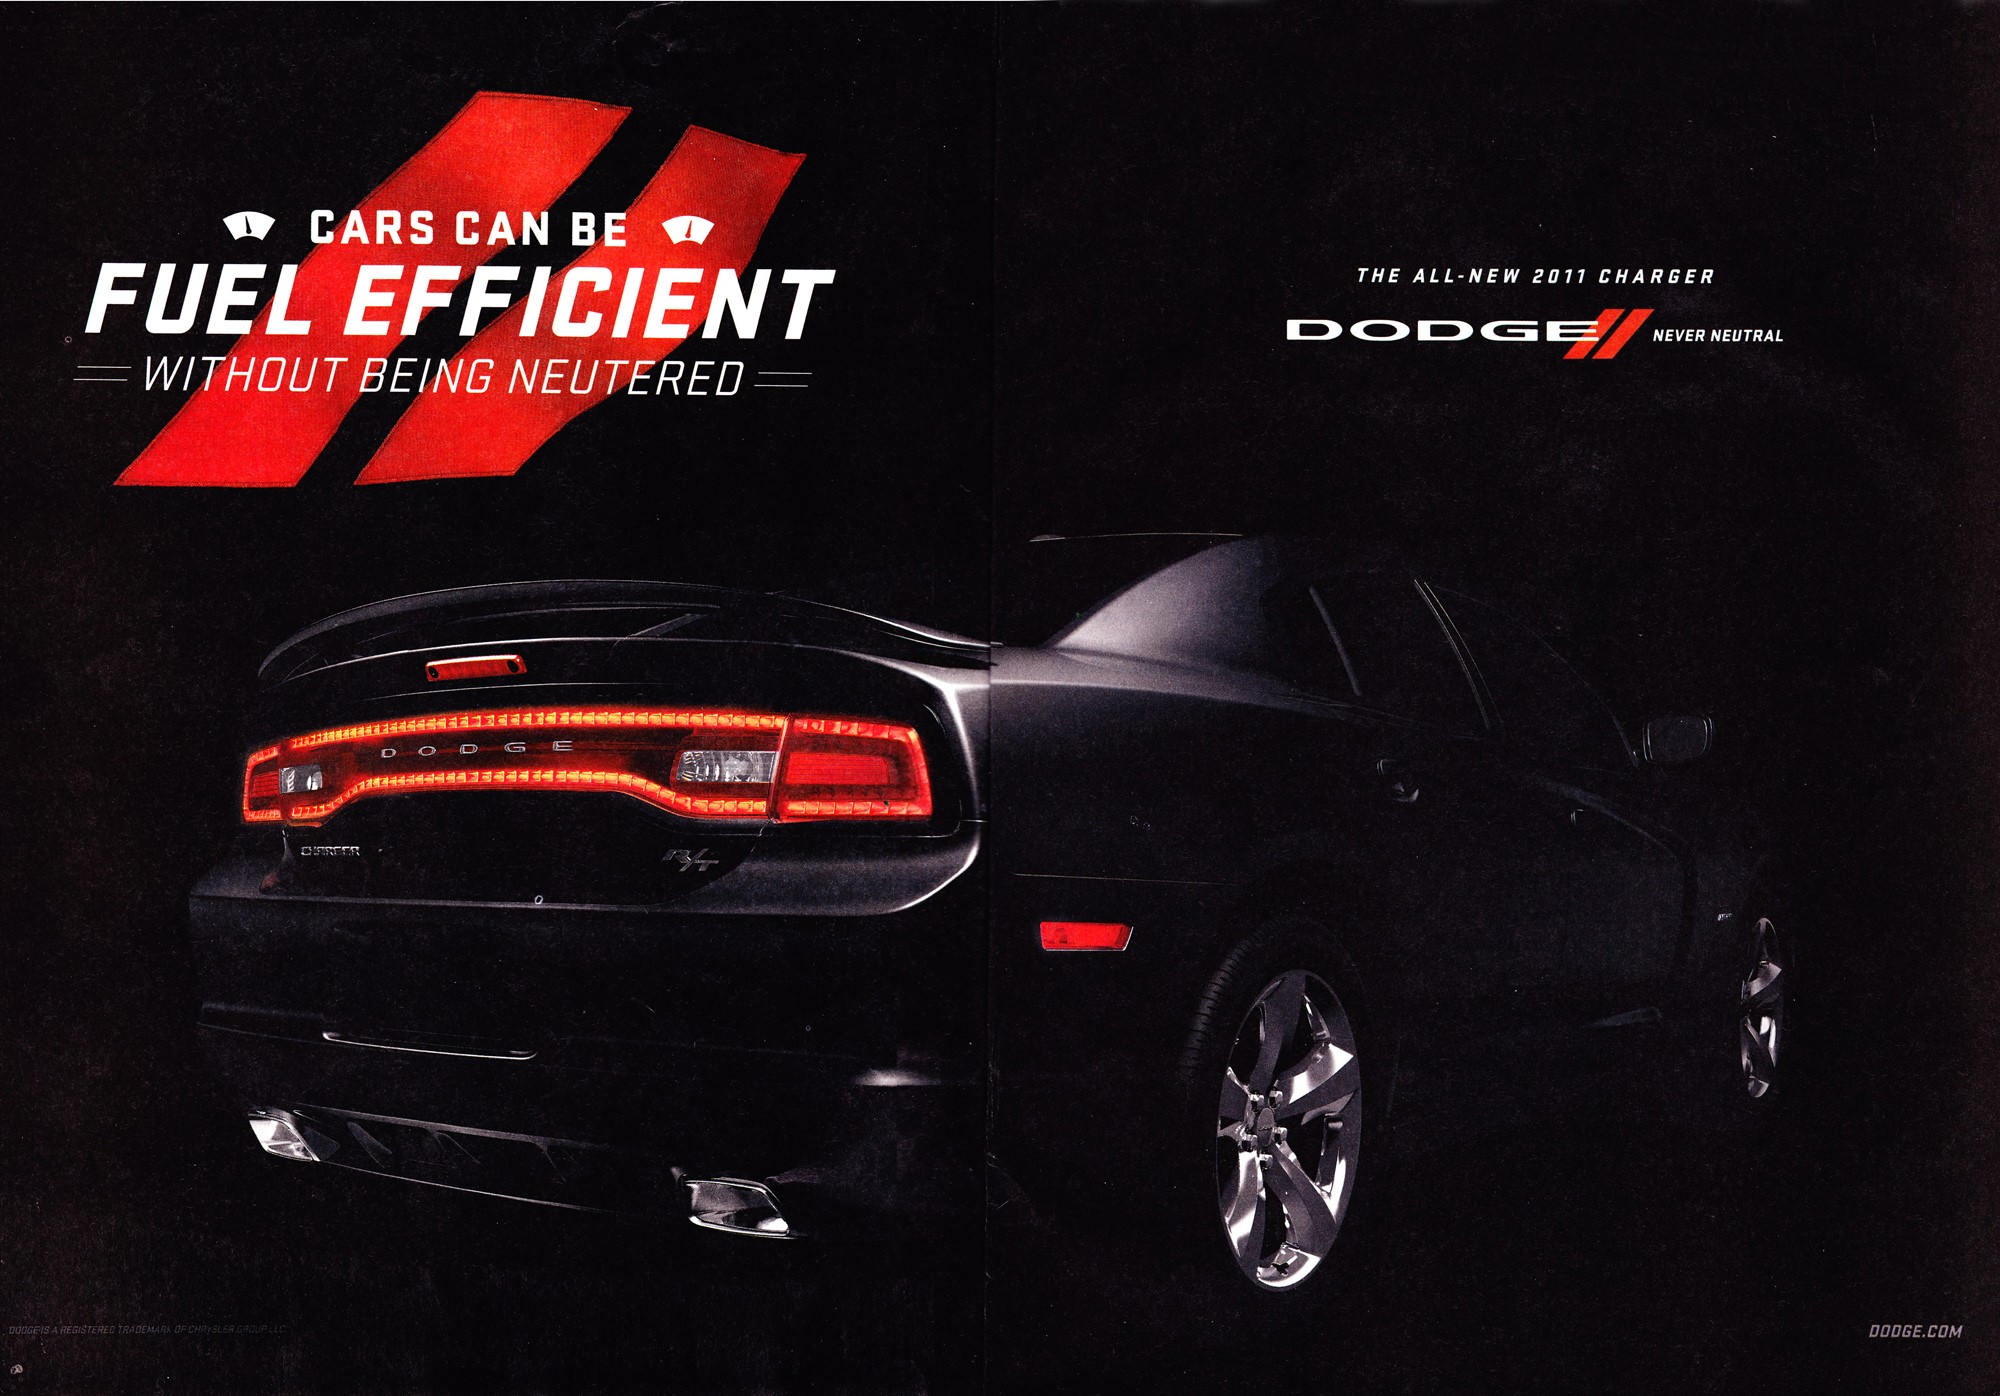 2011 Dodge Charger print advertisement  Dodge Charger Ads